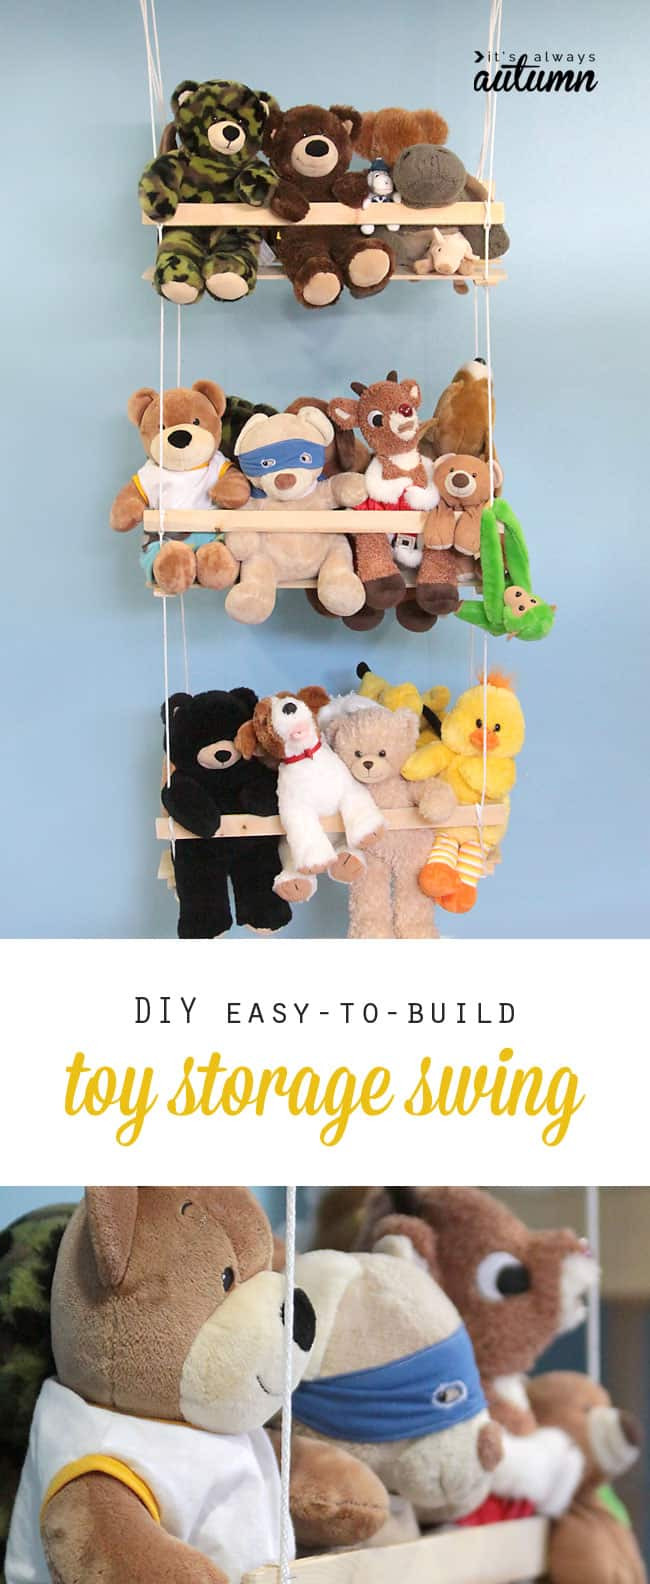 Diy easy to build stuffed toy wall swing